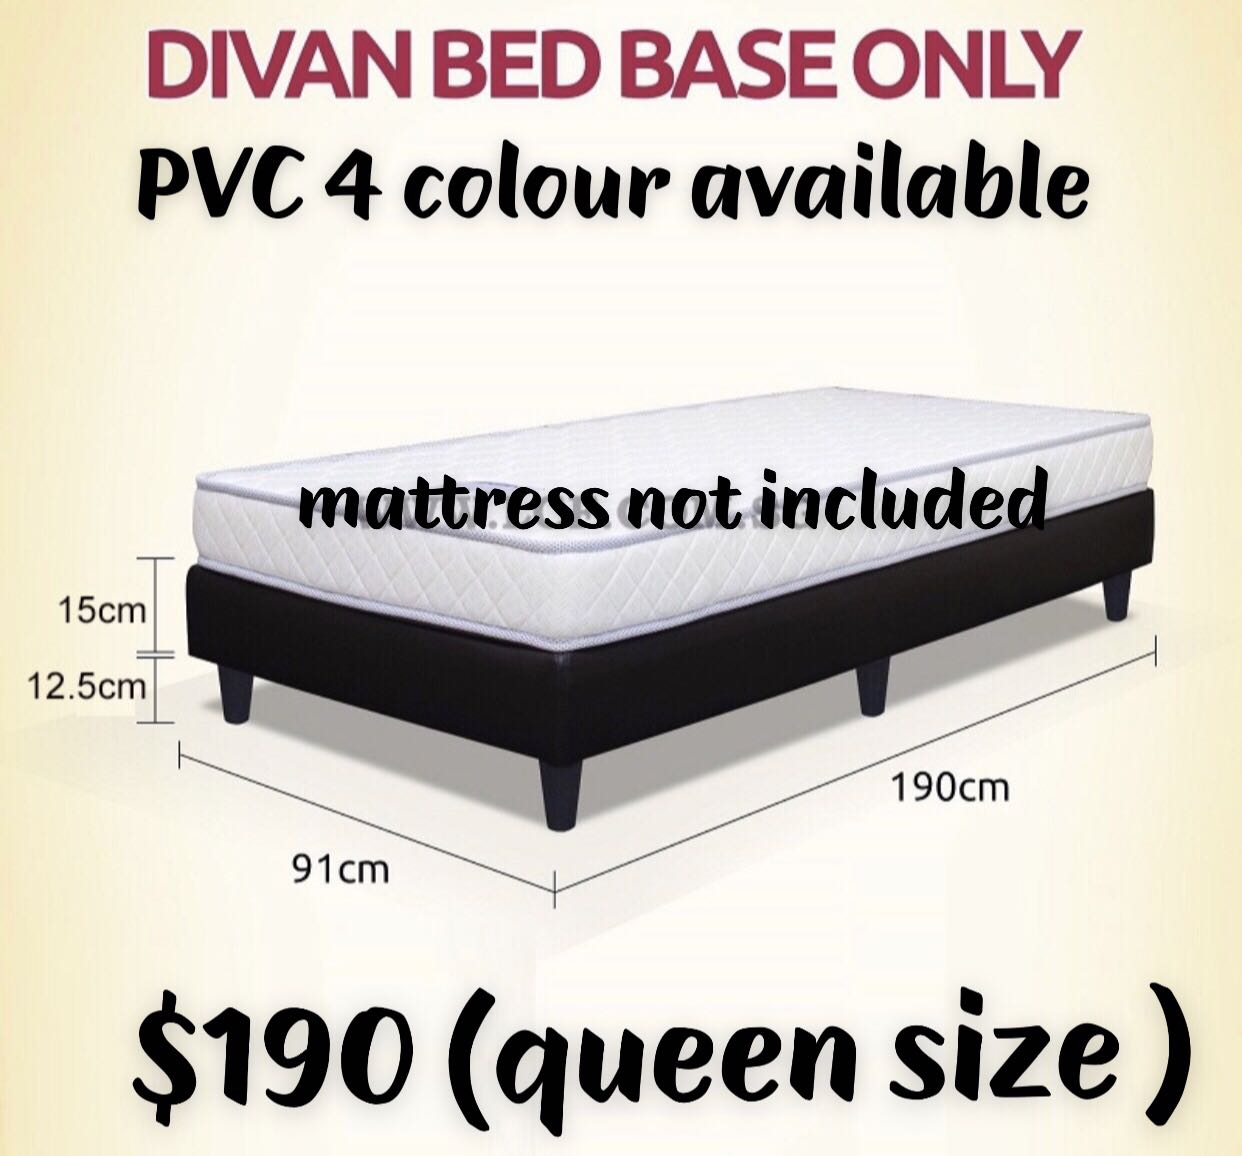 Divan Bed Base Only Queen Size Furniture Beds Mattresses On